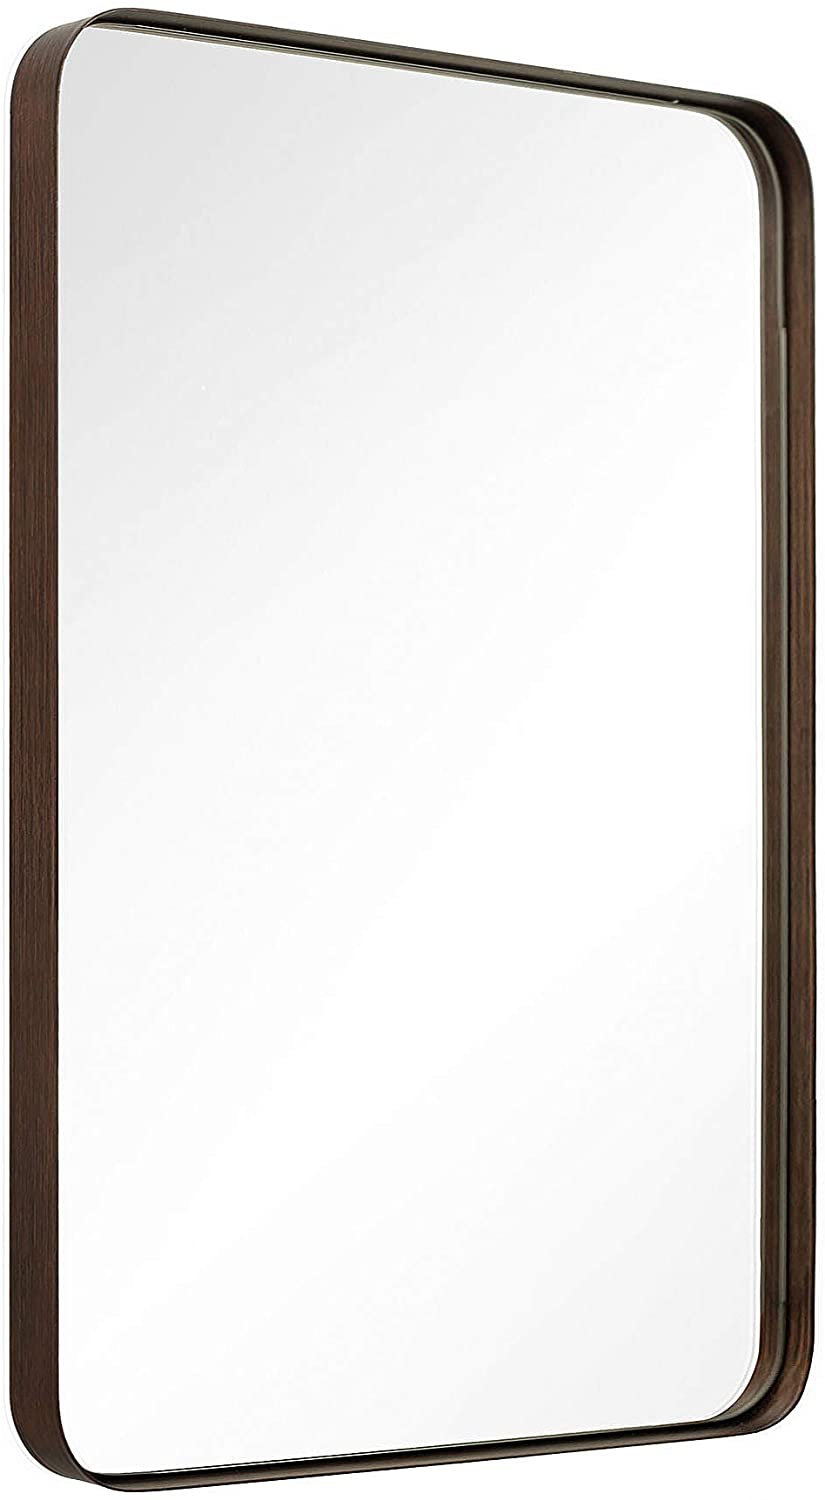 Amazon Com Andy Star Wall Mirror Brushed Bronze 22x30 Contemporary Rectangular Stainless Steel Metal Frame R In 2020 Stainless Steel Metal Rectangular Mirror Wall